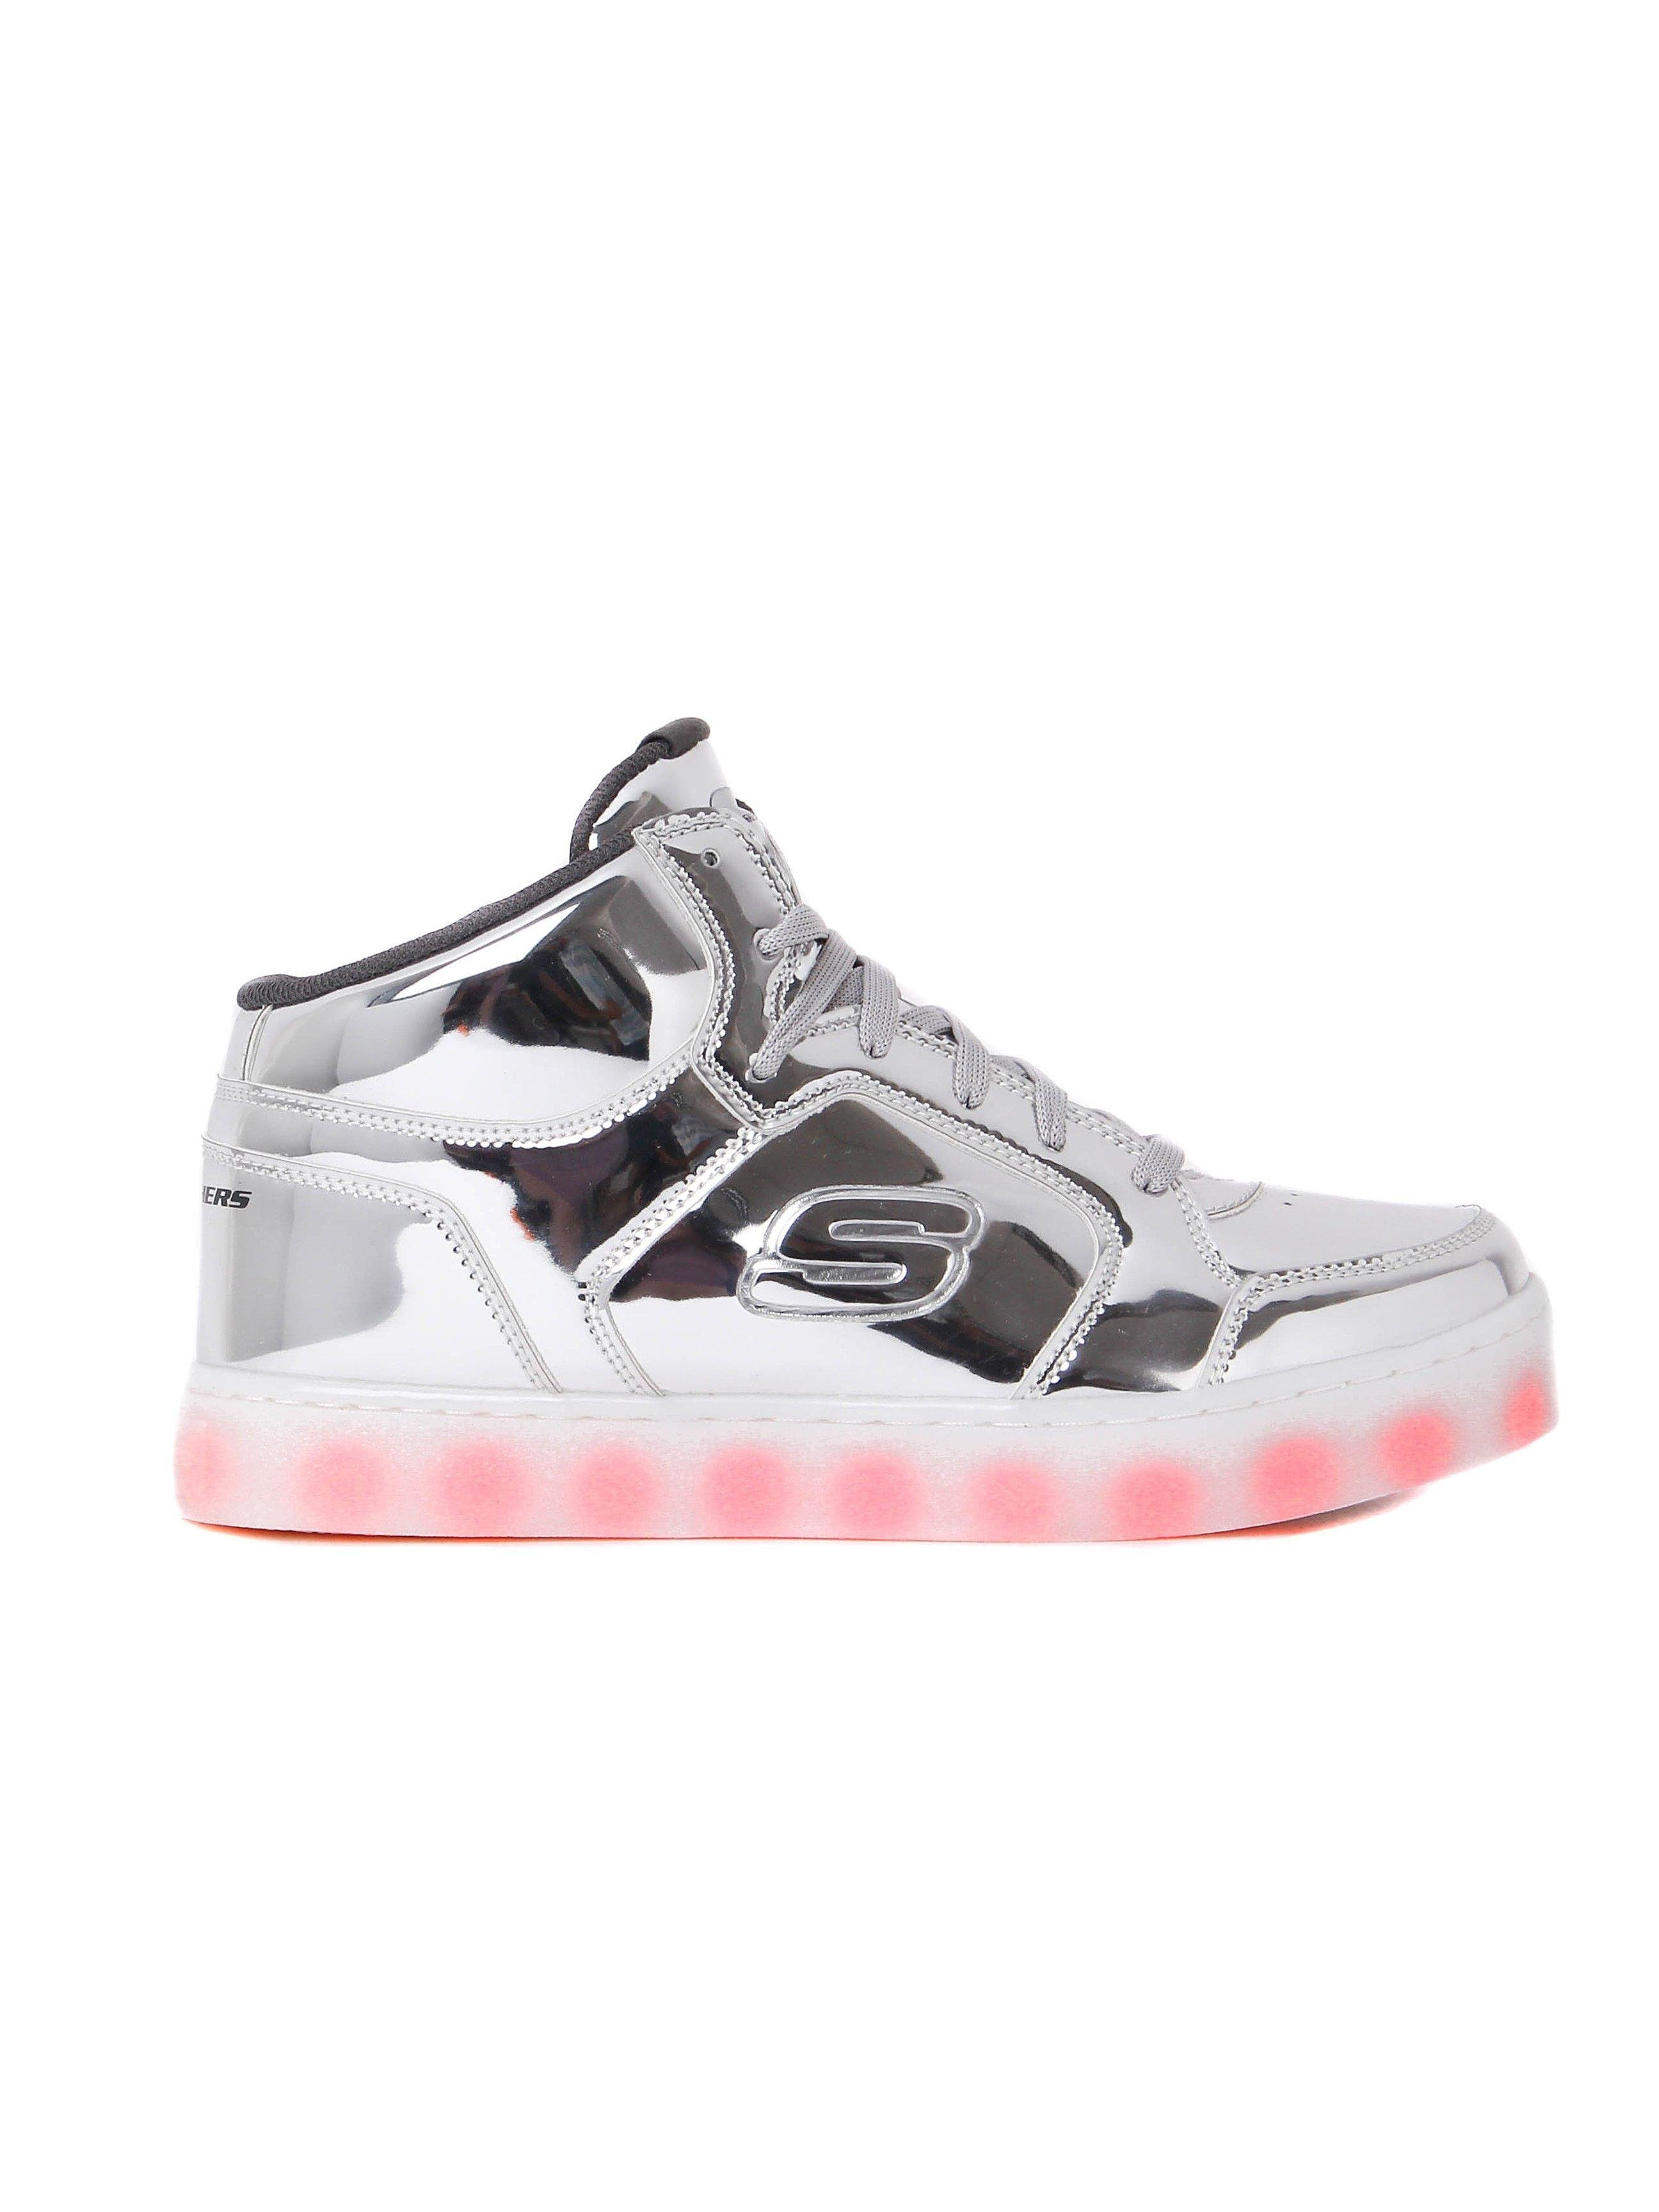 Skechers Kids Energy Lights Trainers - Silver Patent